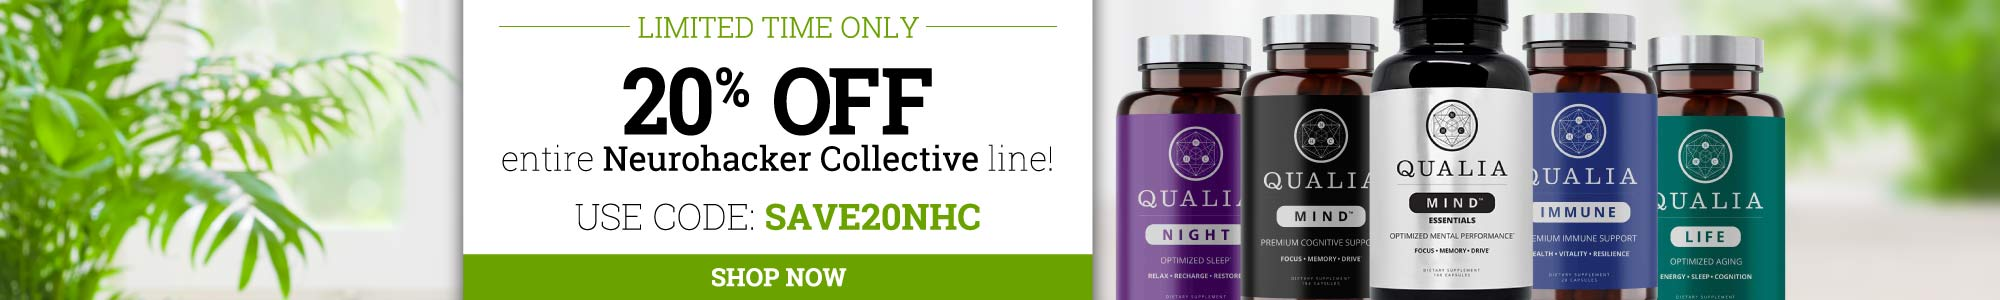 Limited time only. 20% off entire Neurohacker Collective line. Use Coupon code: save20nhc Shop now.